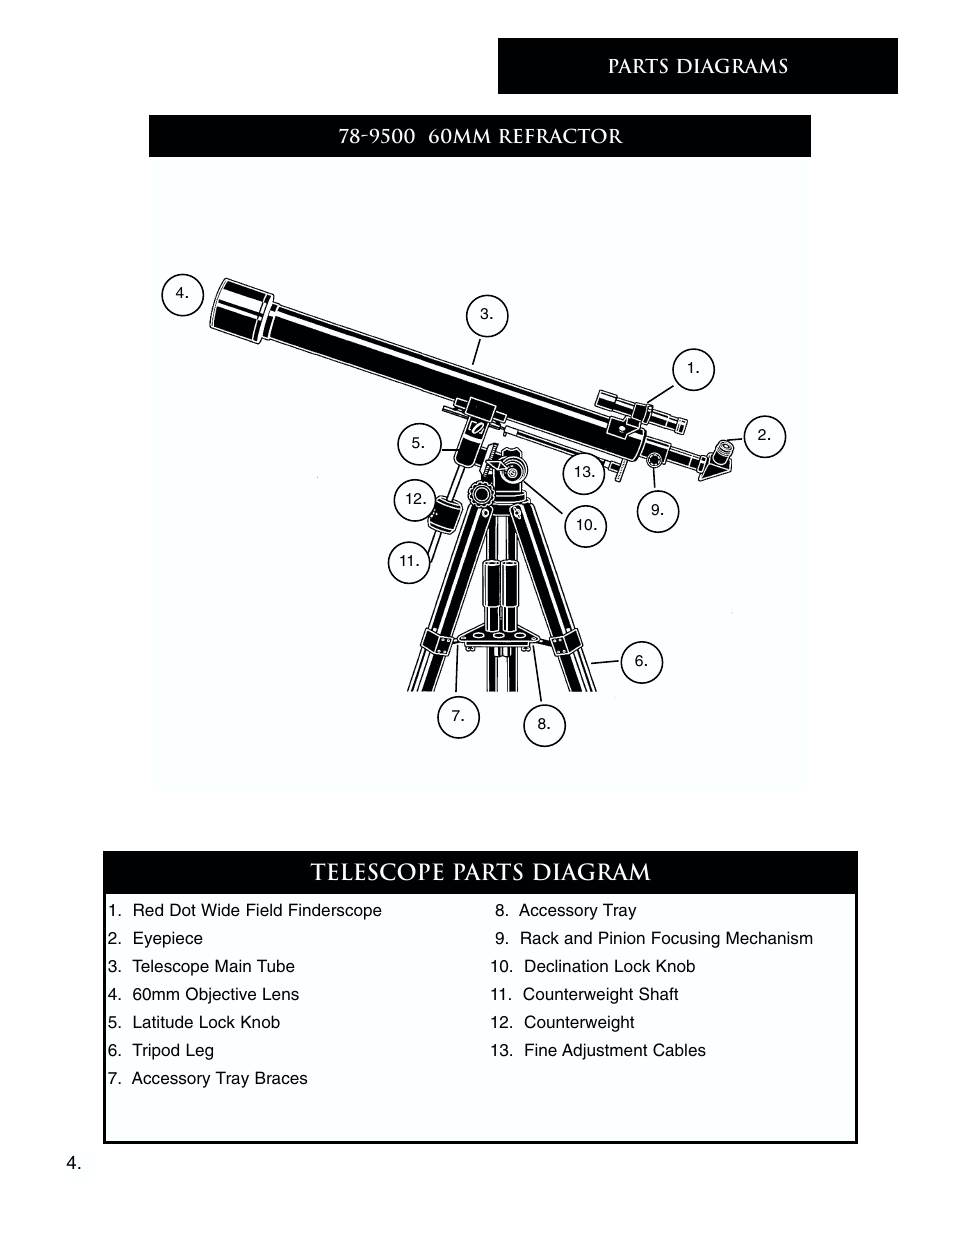 Telescope Parts Diagram Bushnell 78 9500 User Manual Page 4 12